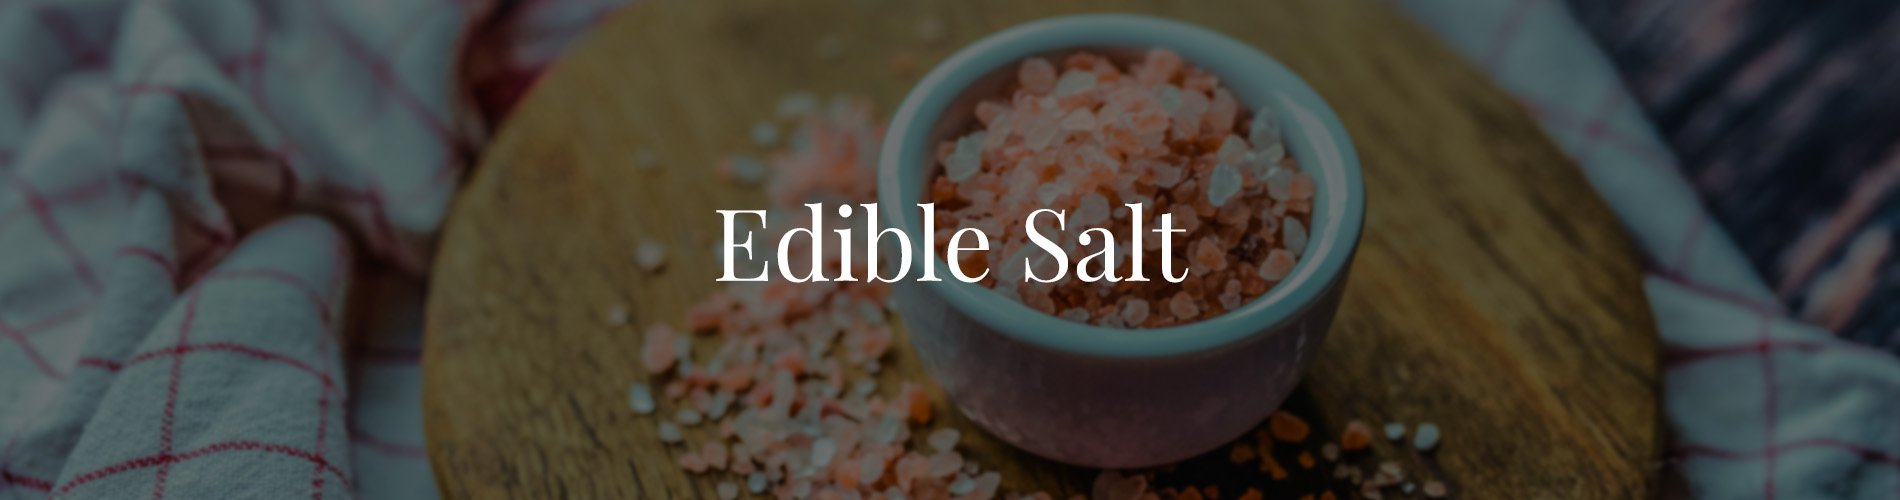 Edible salt Banner For product page